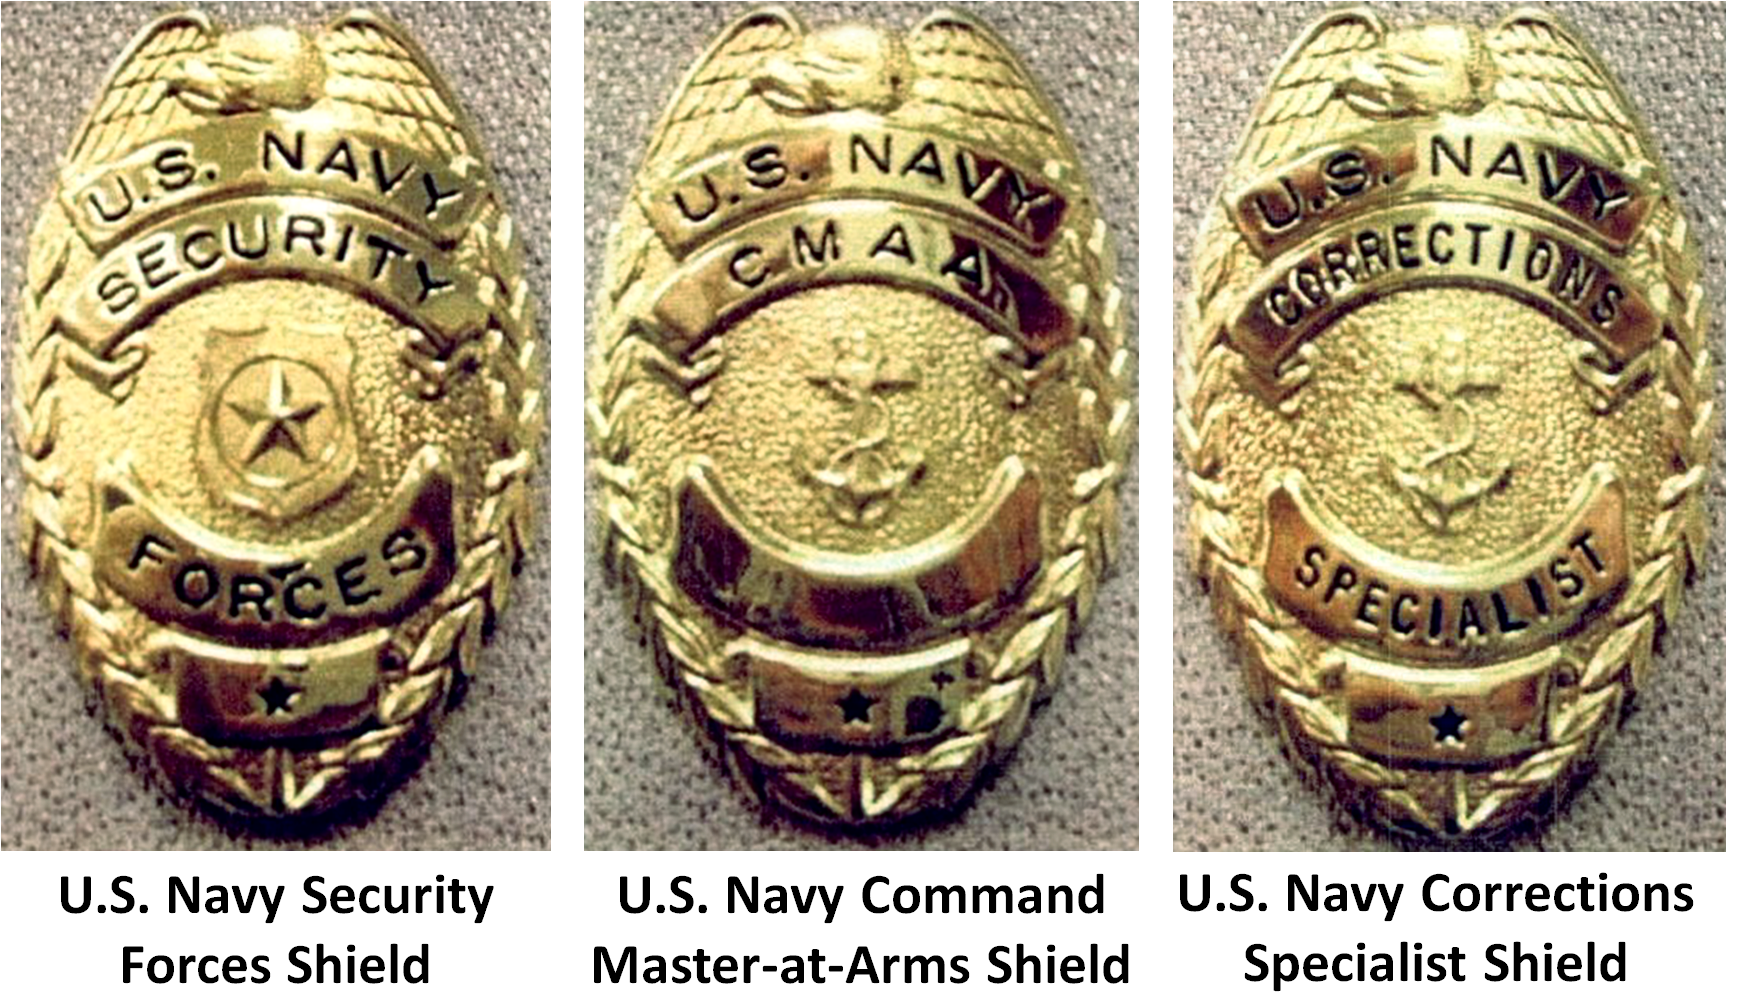 an introduction to the history of law enforcement in the united states Attorney general supervises the administration of all law enforcement operations of the department represents the united states in legal matters as its chief attorney furnishes legal advice and opinions to the president, the cabinet, and the.